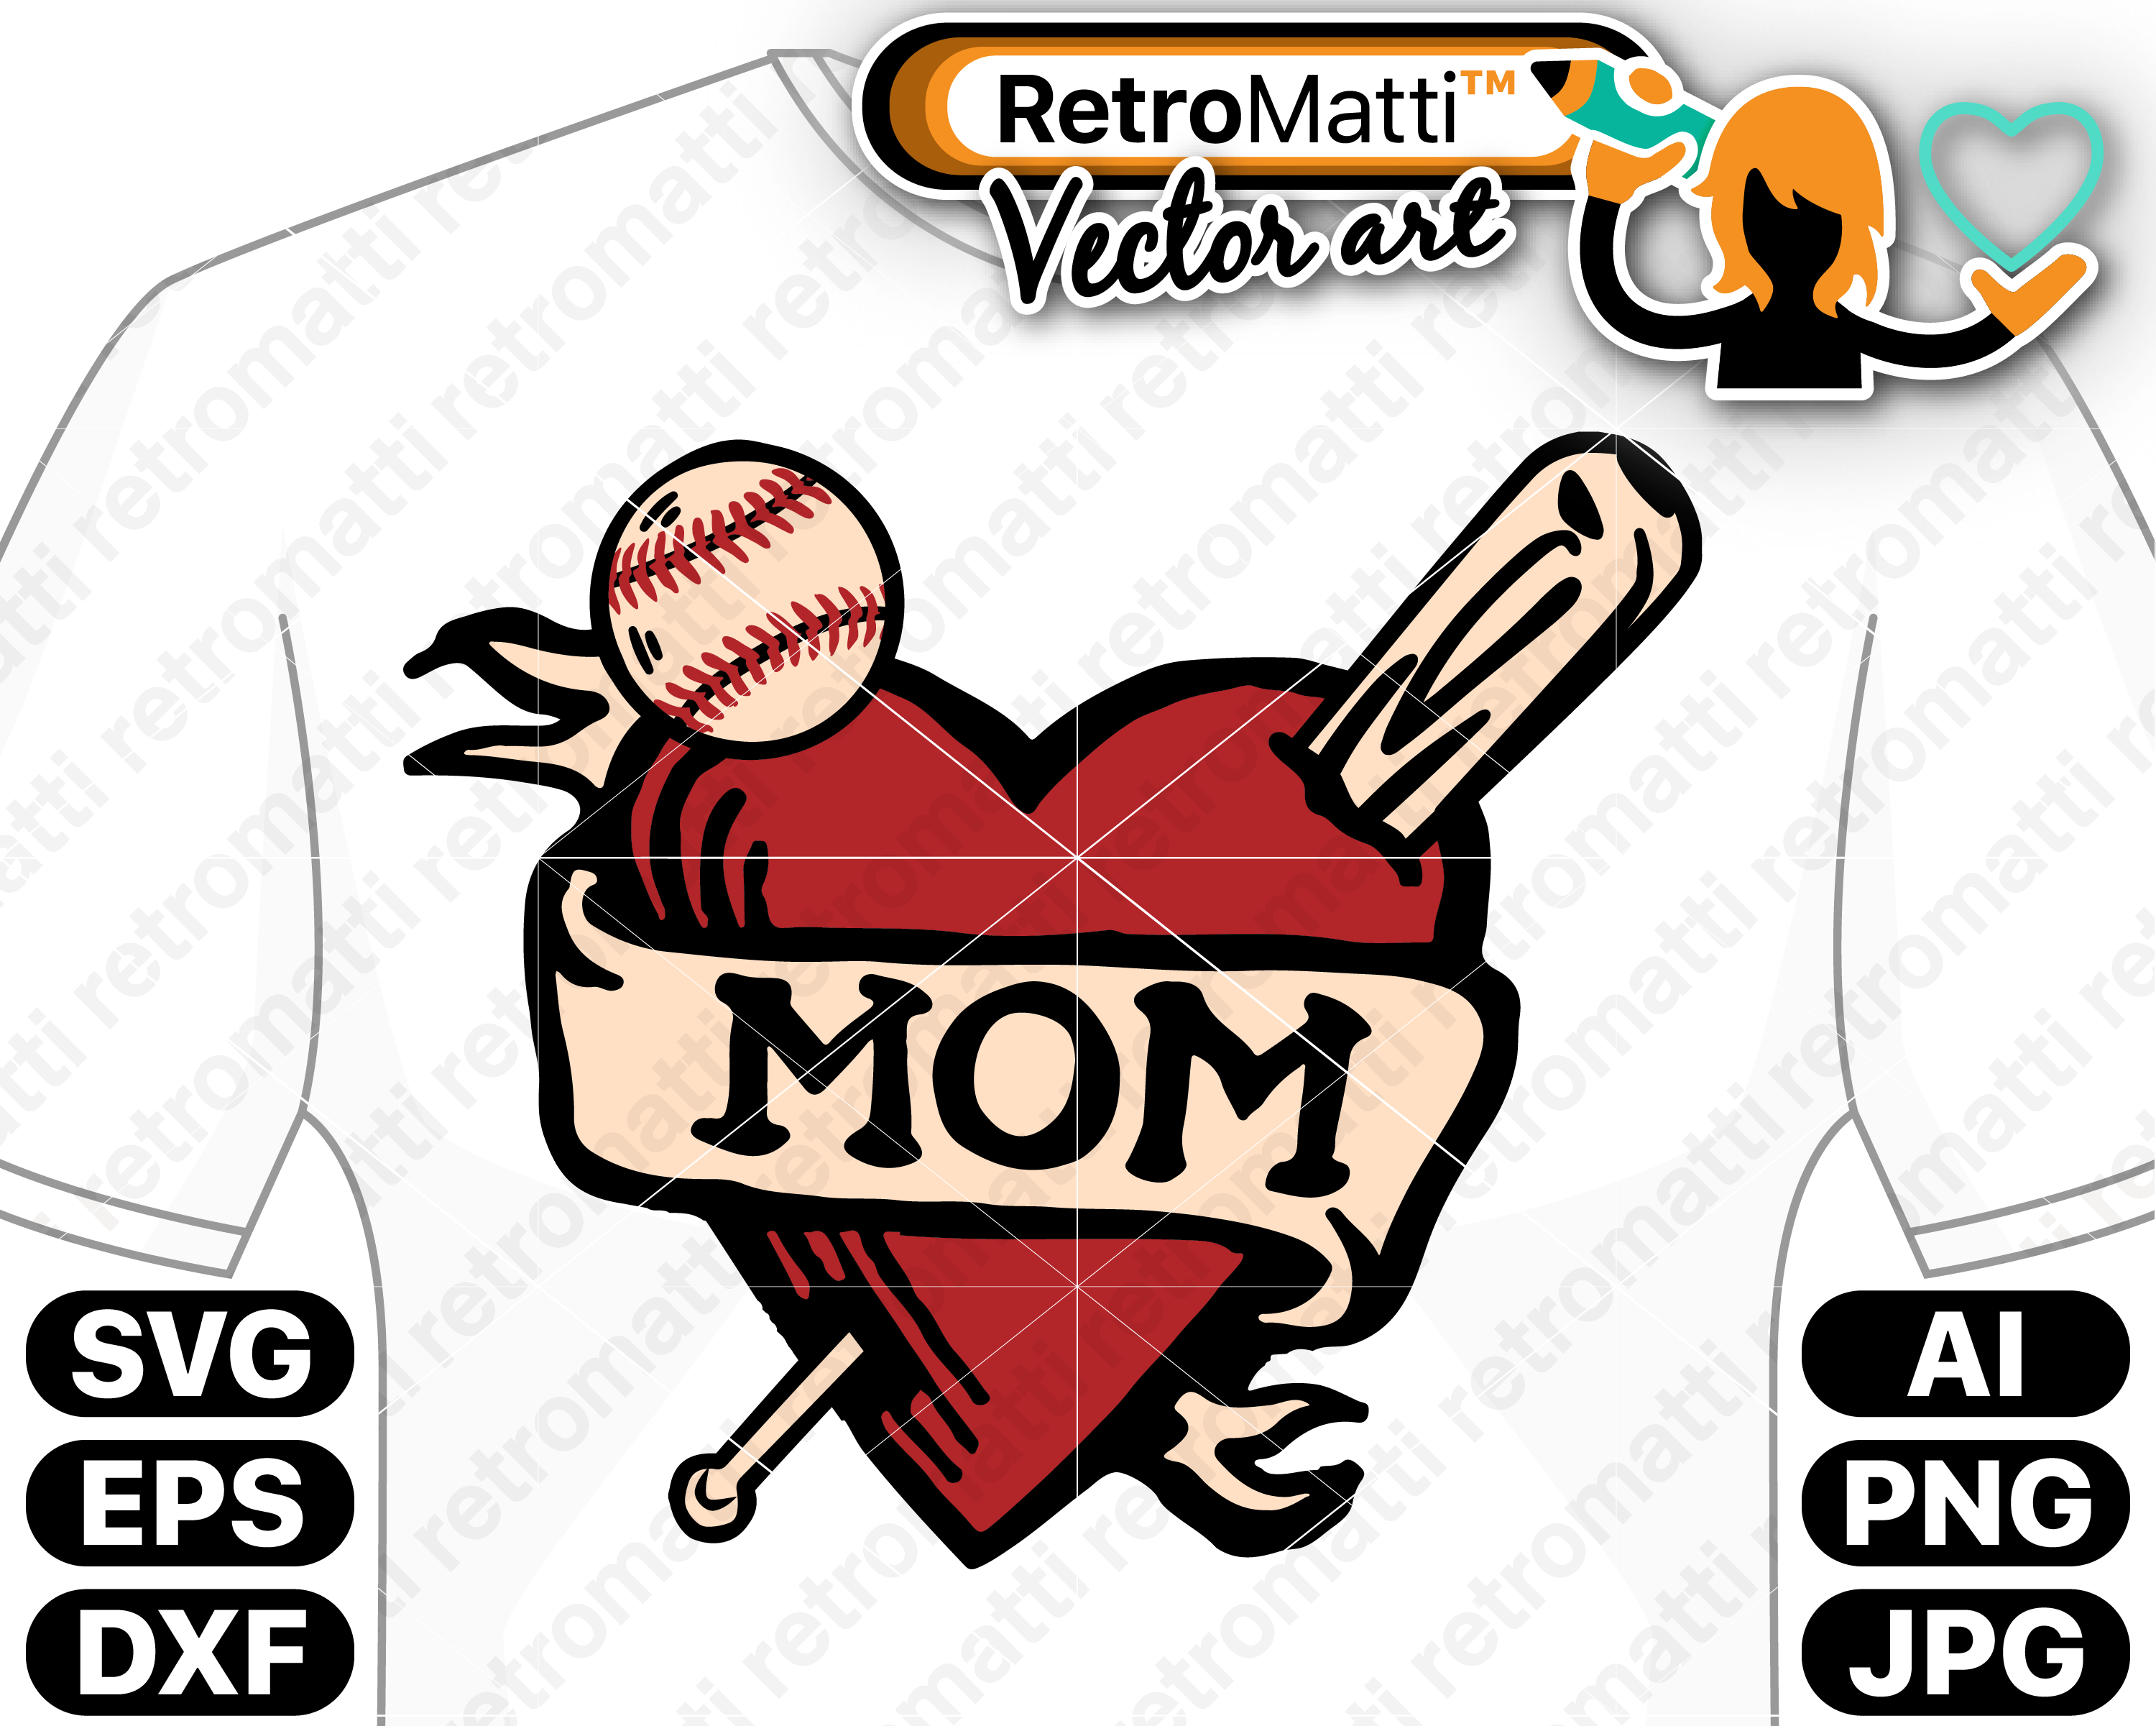 Baseball Mom Shirt Tattoo 2 Retro Design Svg Retromatti Made And Designed In Canada